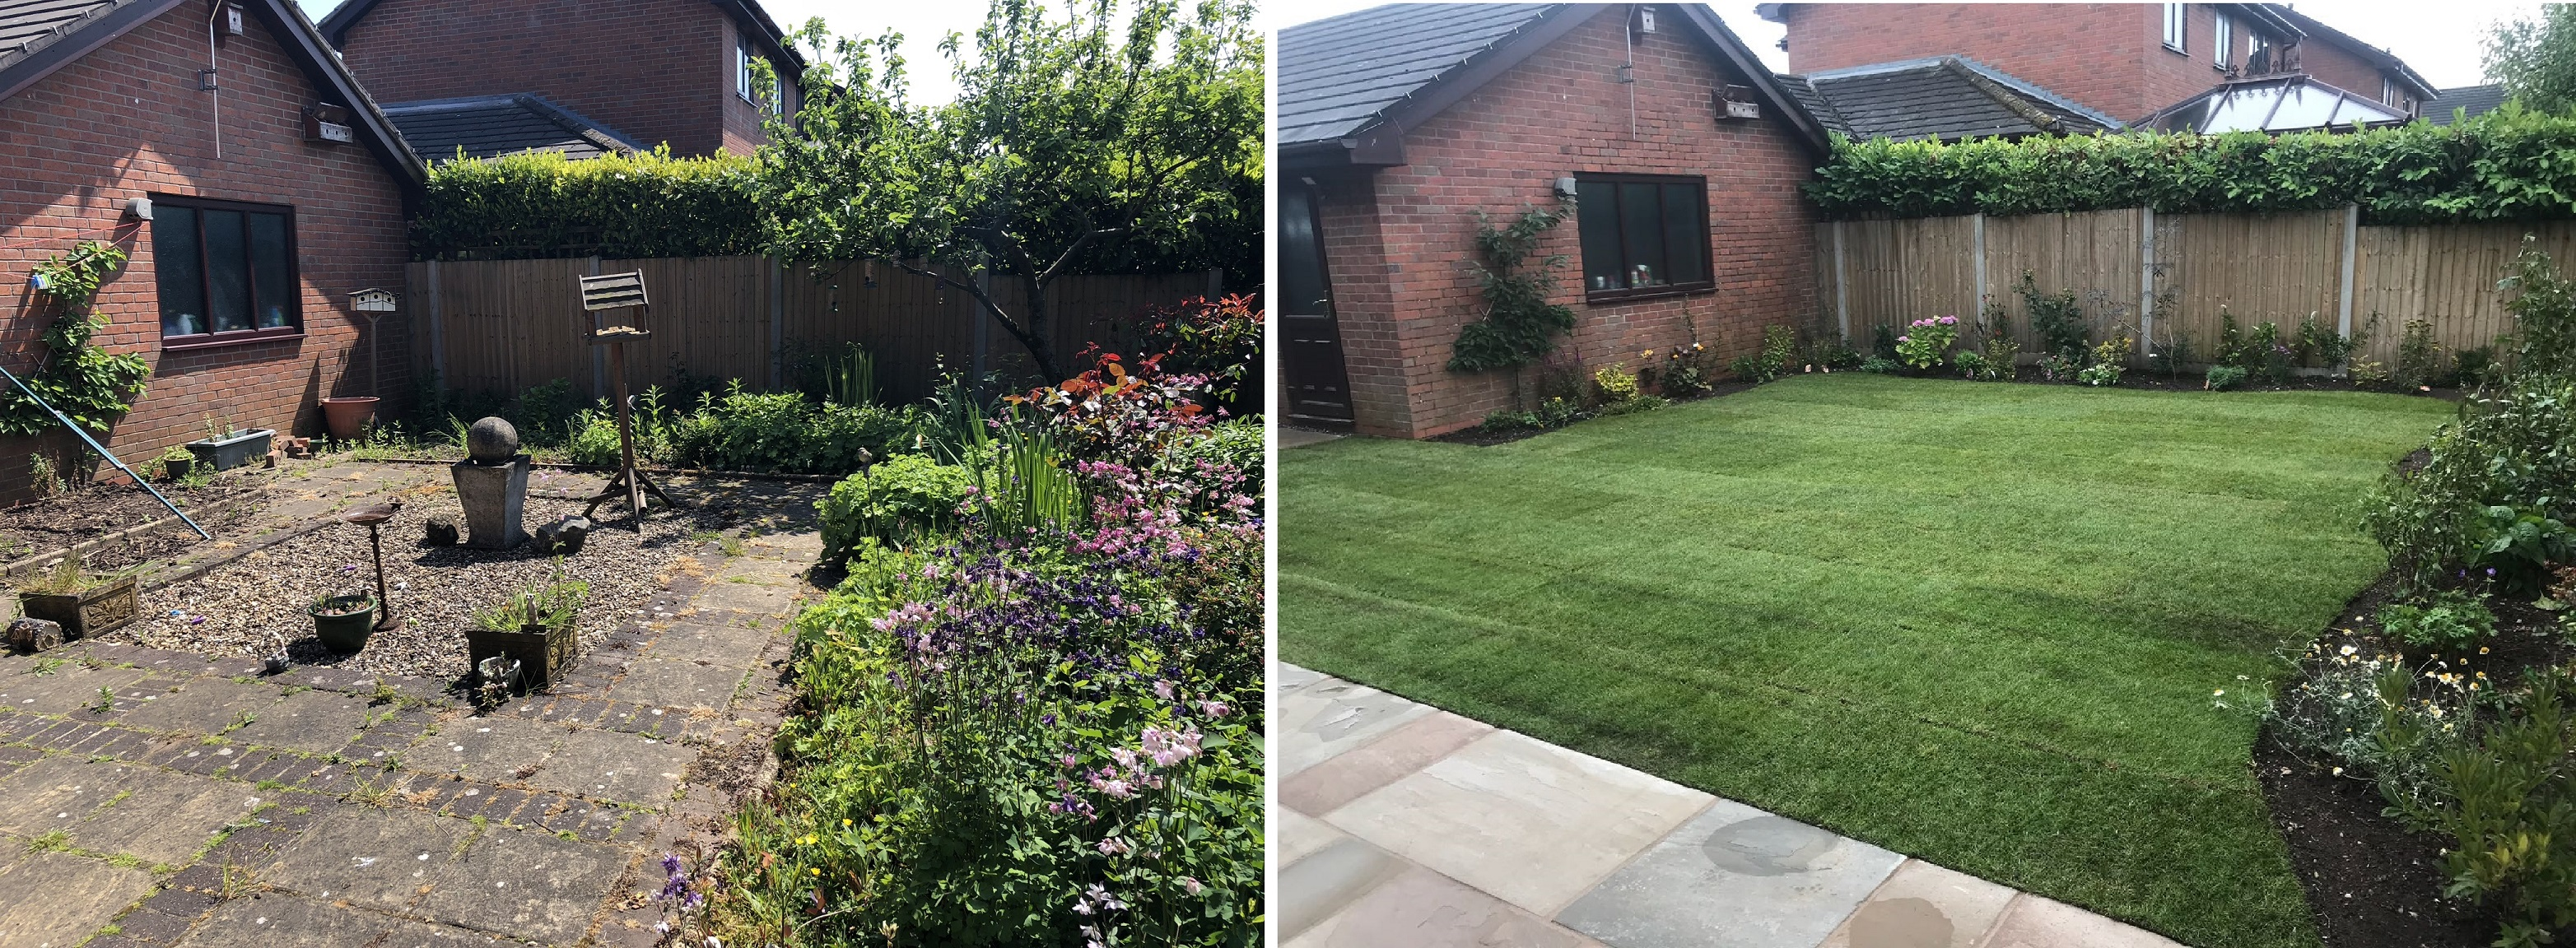 Before and After Landscape Gardener in Cheadle - Turfing